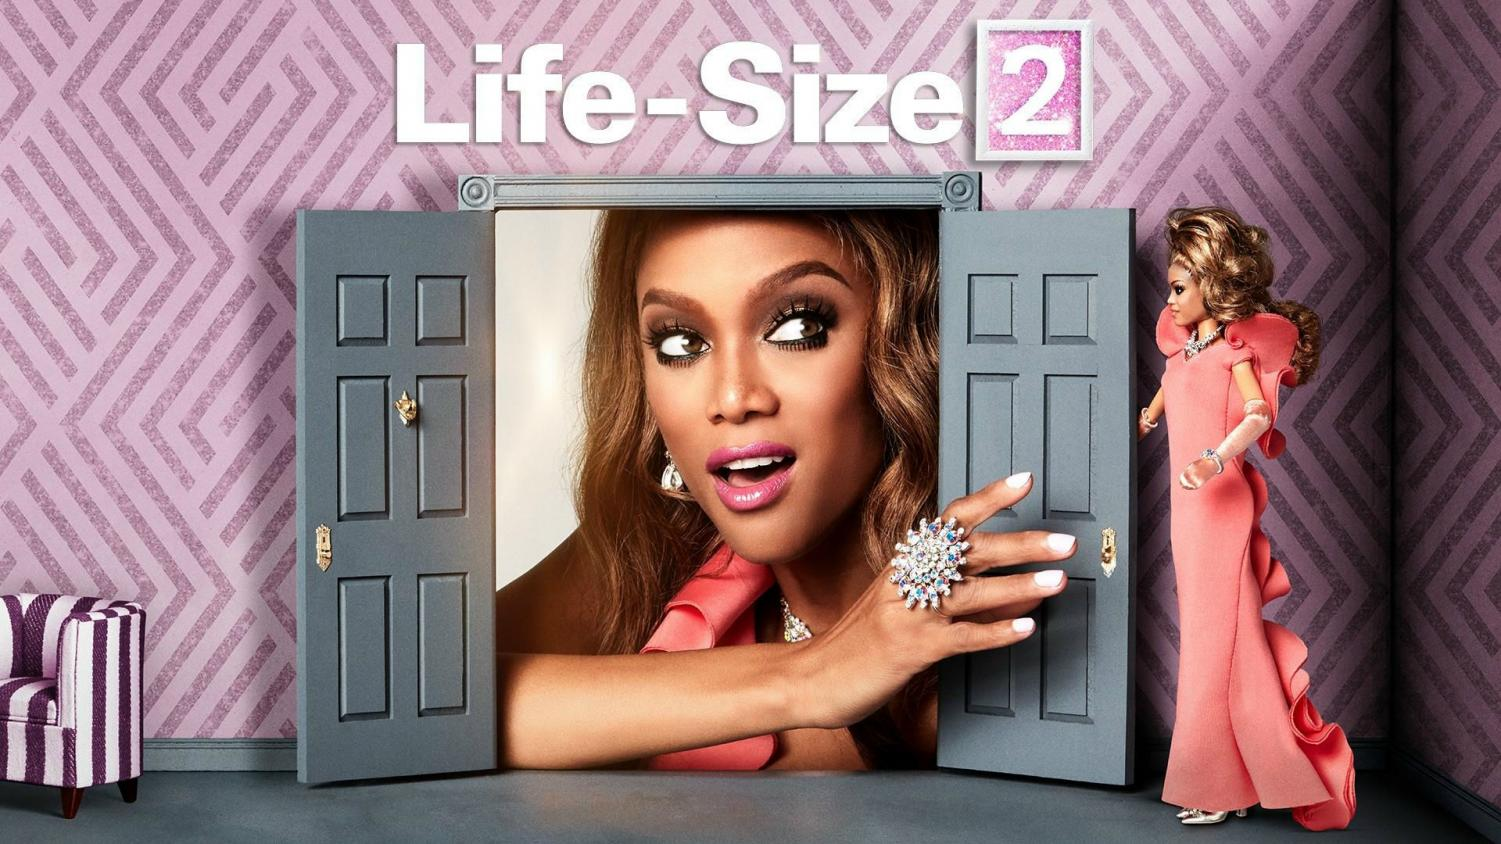 The movie poster for Life Size 2 starring Tyra Banks (courtesy of freeform.go.com).